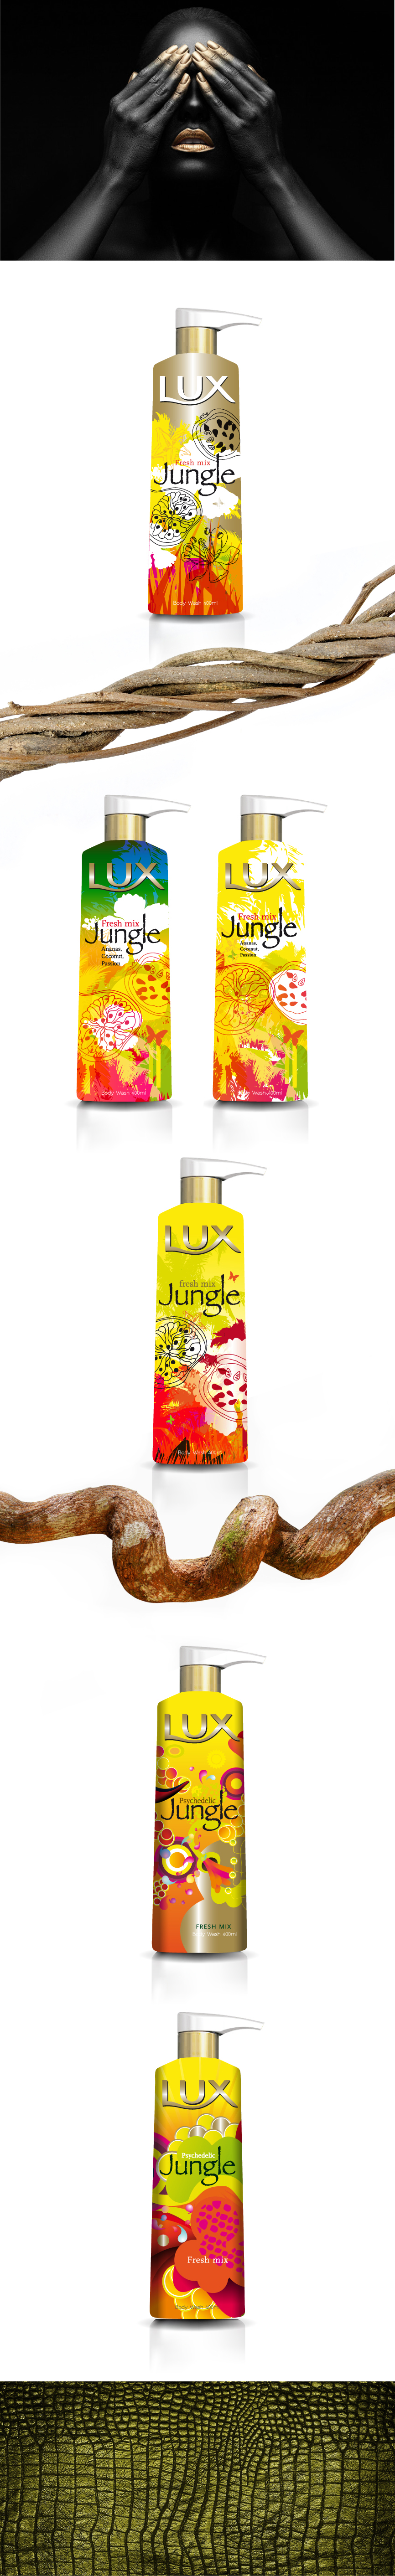 Page luxe jungle